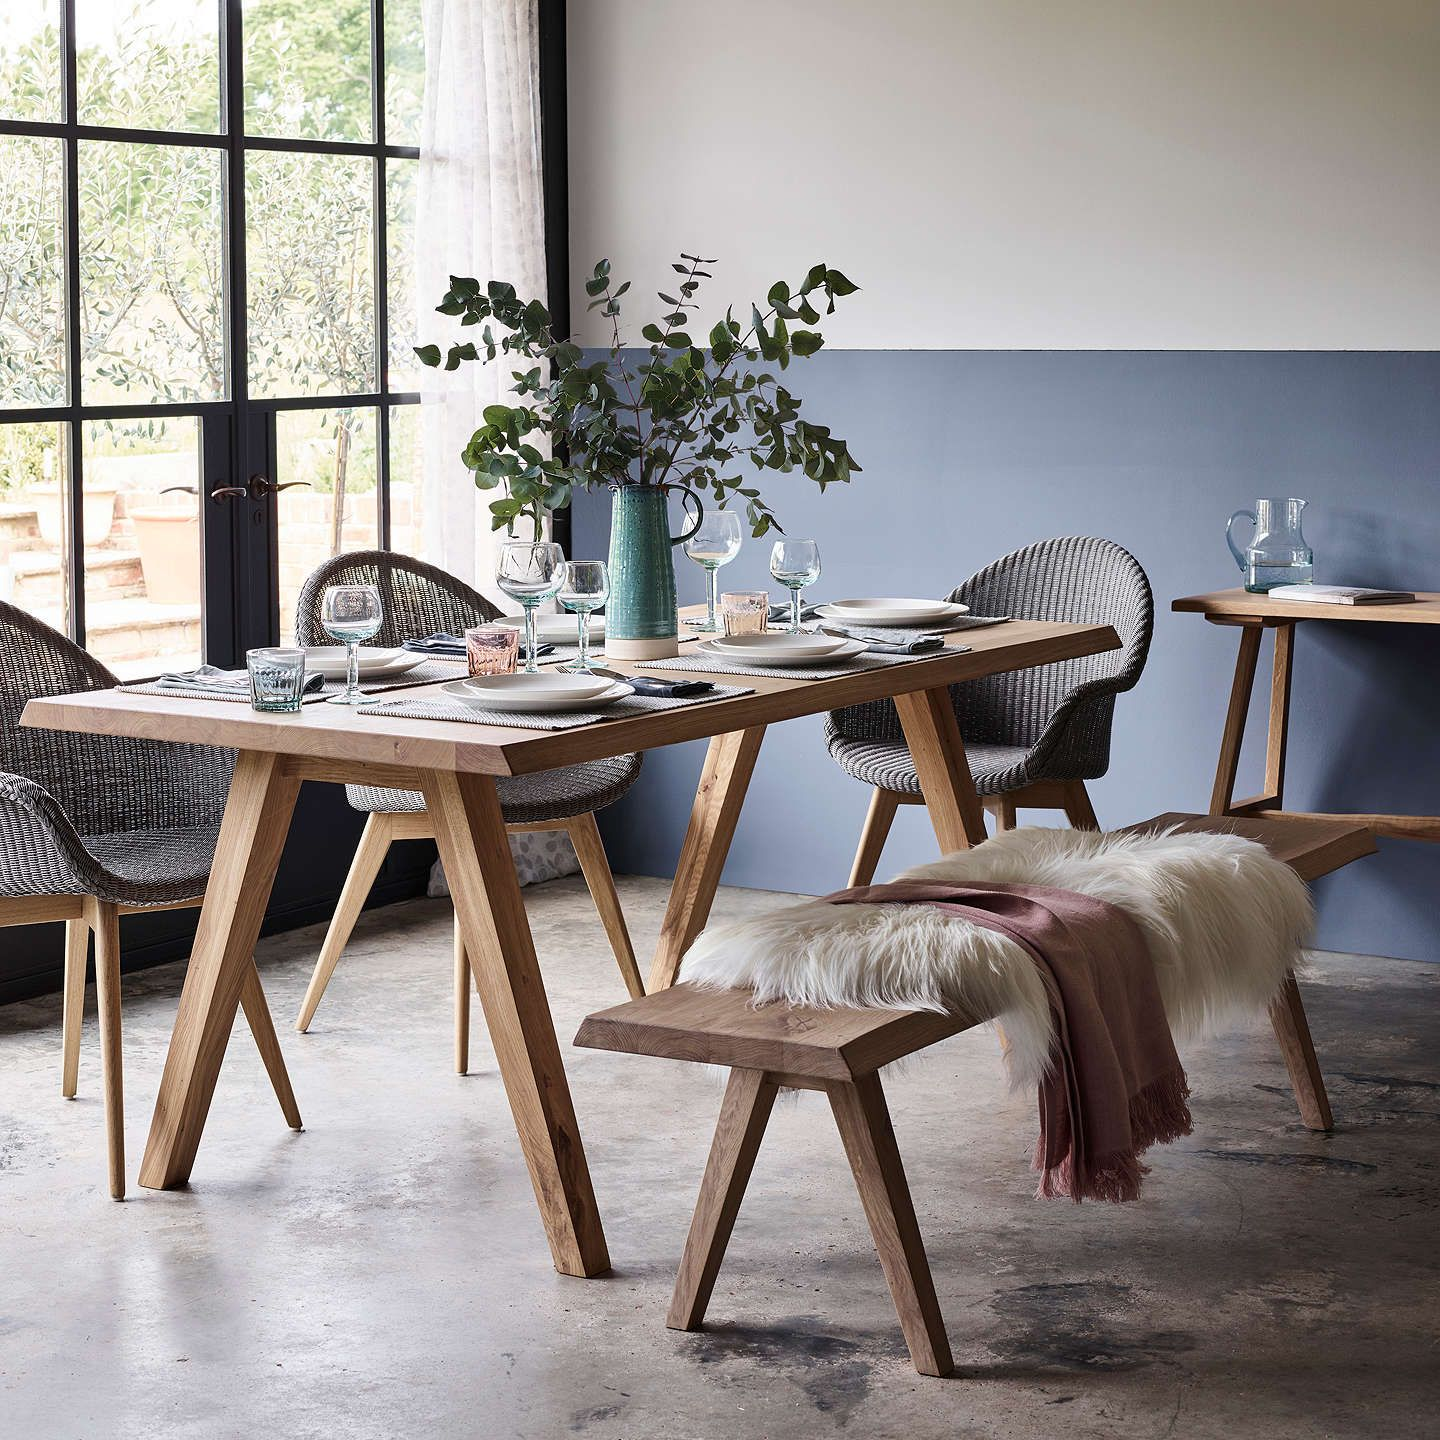 john lewis croft collection lorn 4 seater dining bench oak dining